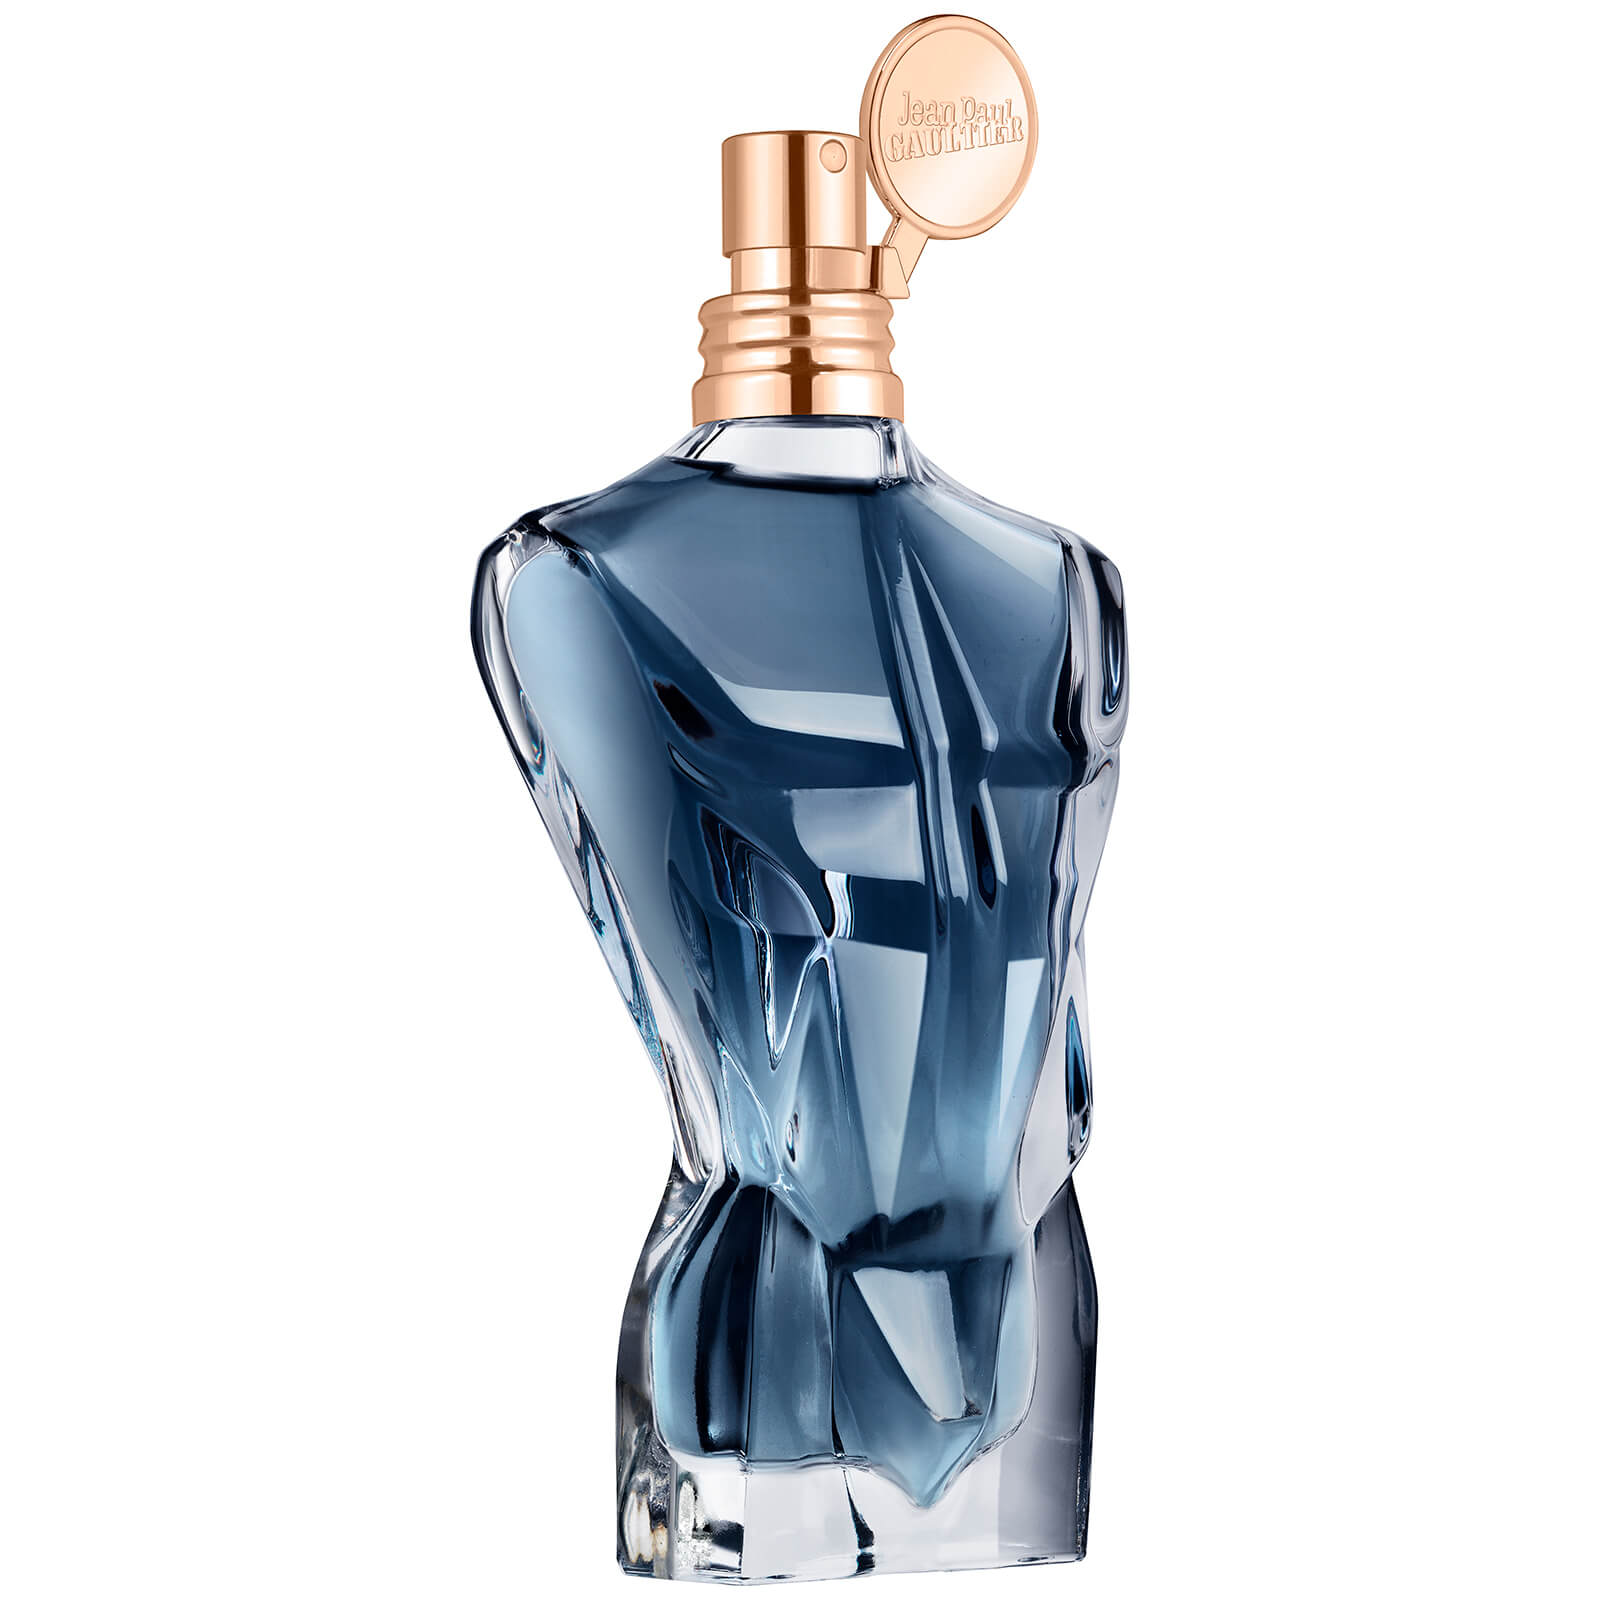 4a917a3df Jean Paul Gaultier Le Male Essence Eau de Parfum 75ml | Free Shipping |  Lookfantastic